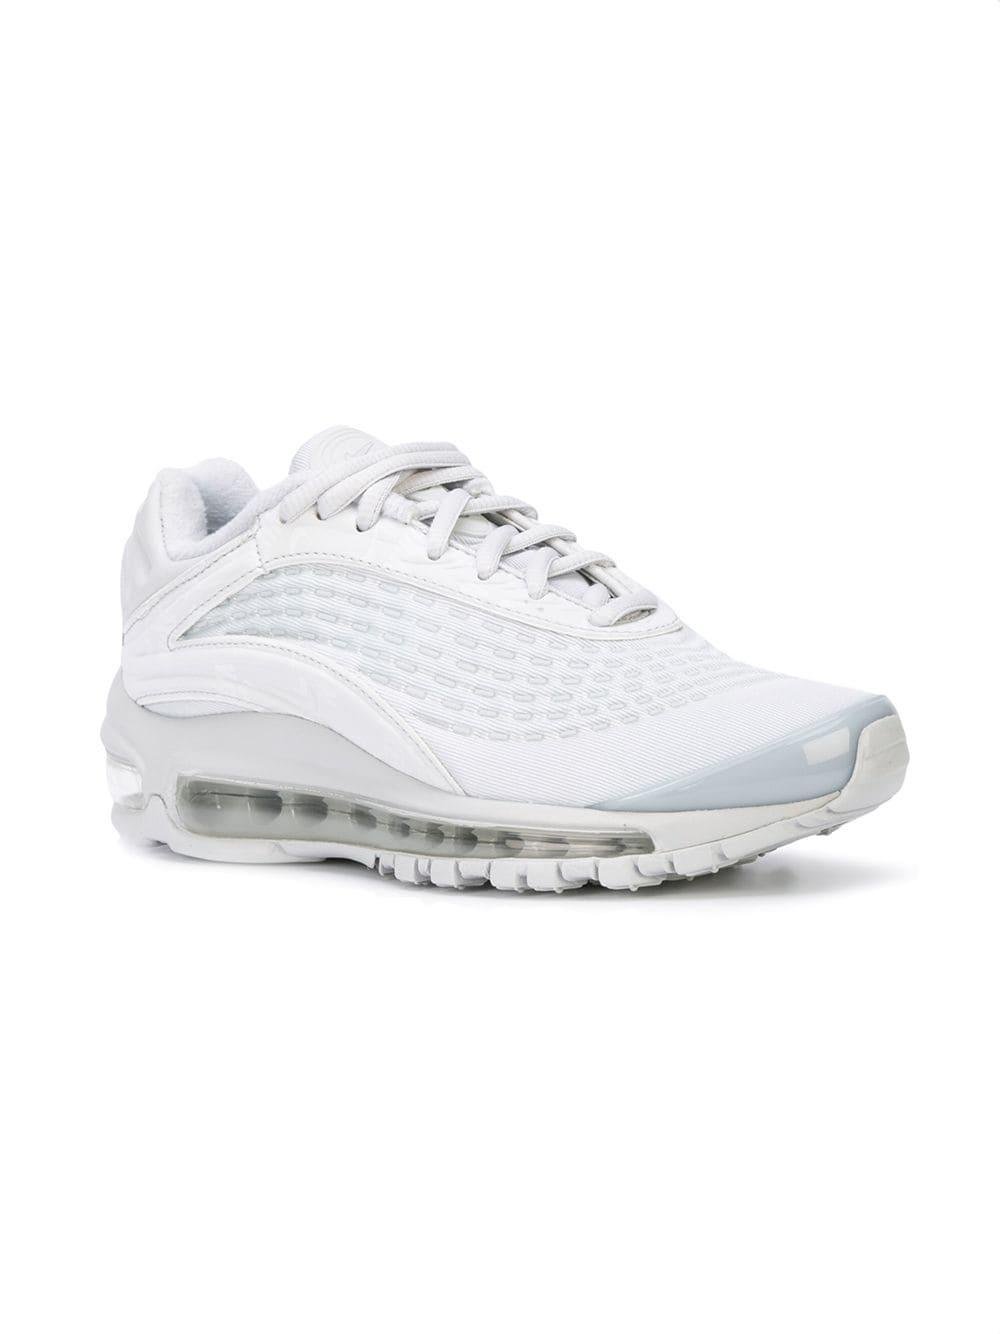 db087ad27d Nike Airmax Deluxe Se in White - Lyst